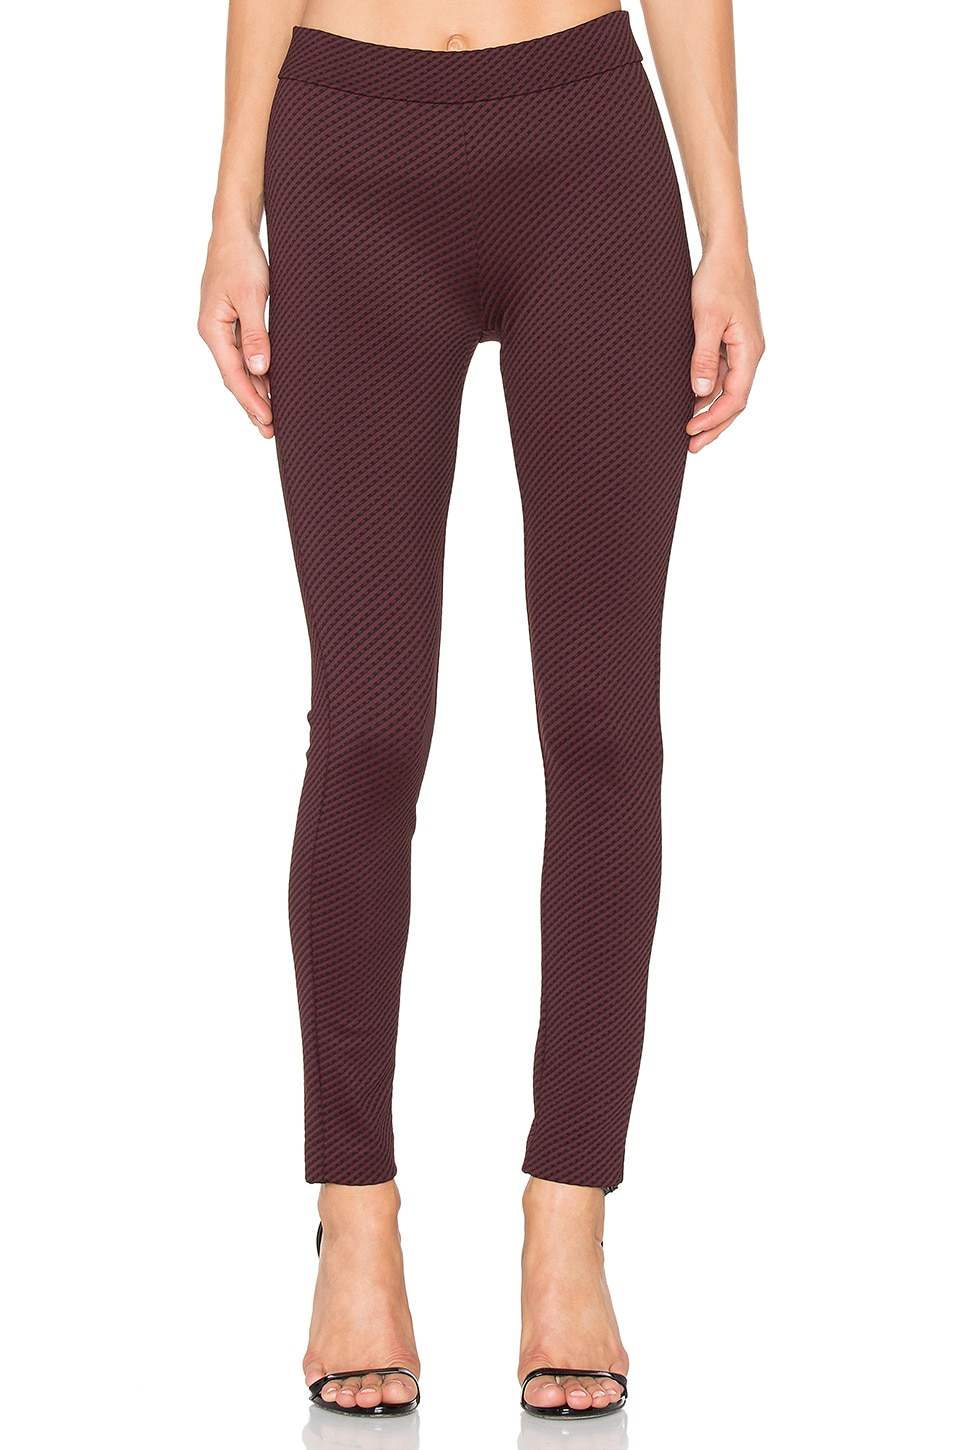 Photo of Adbelle K Pant by Theory on sale